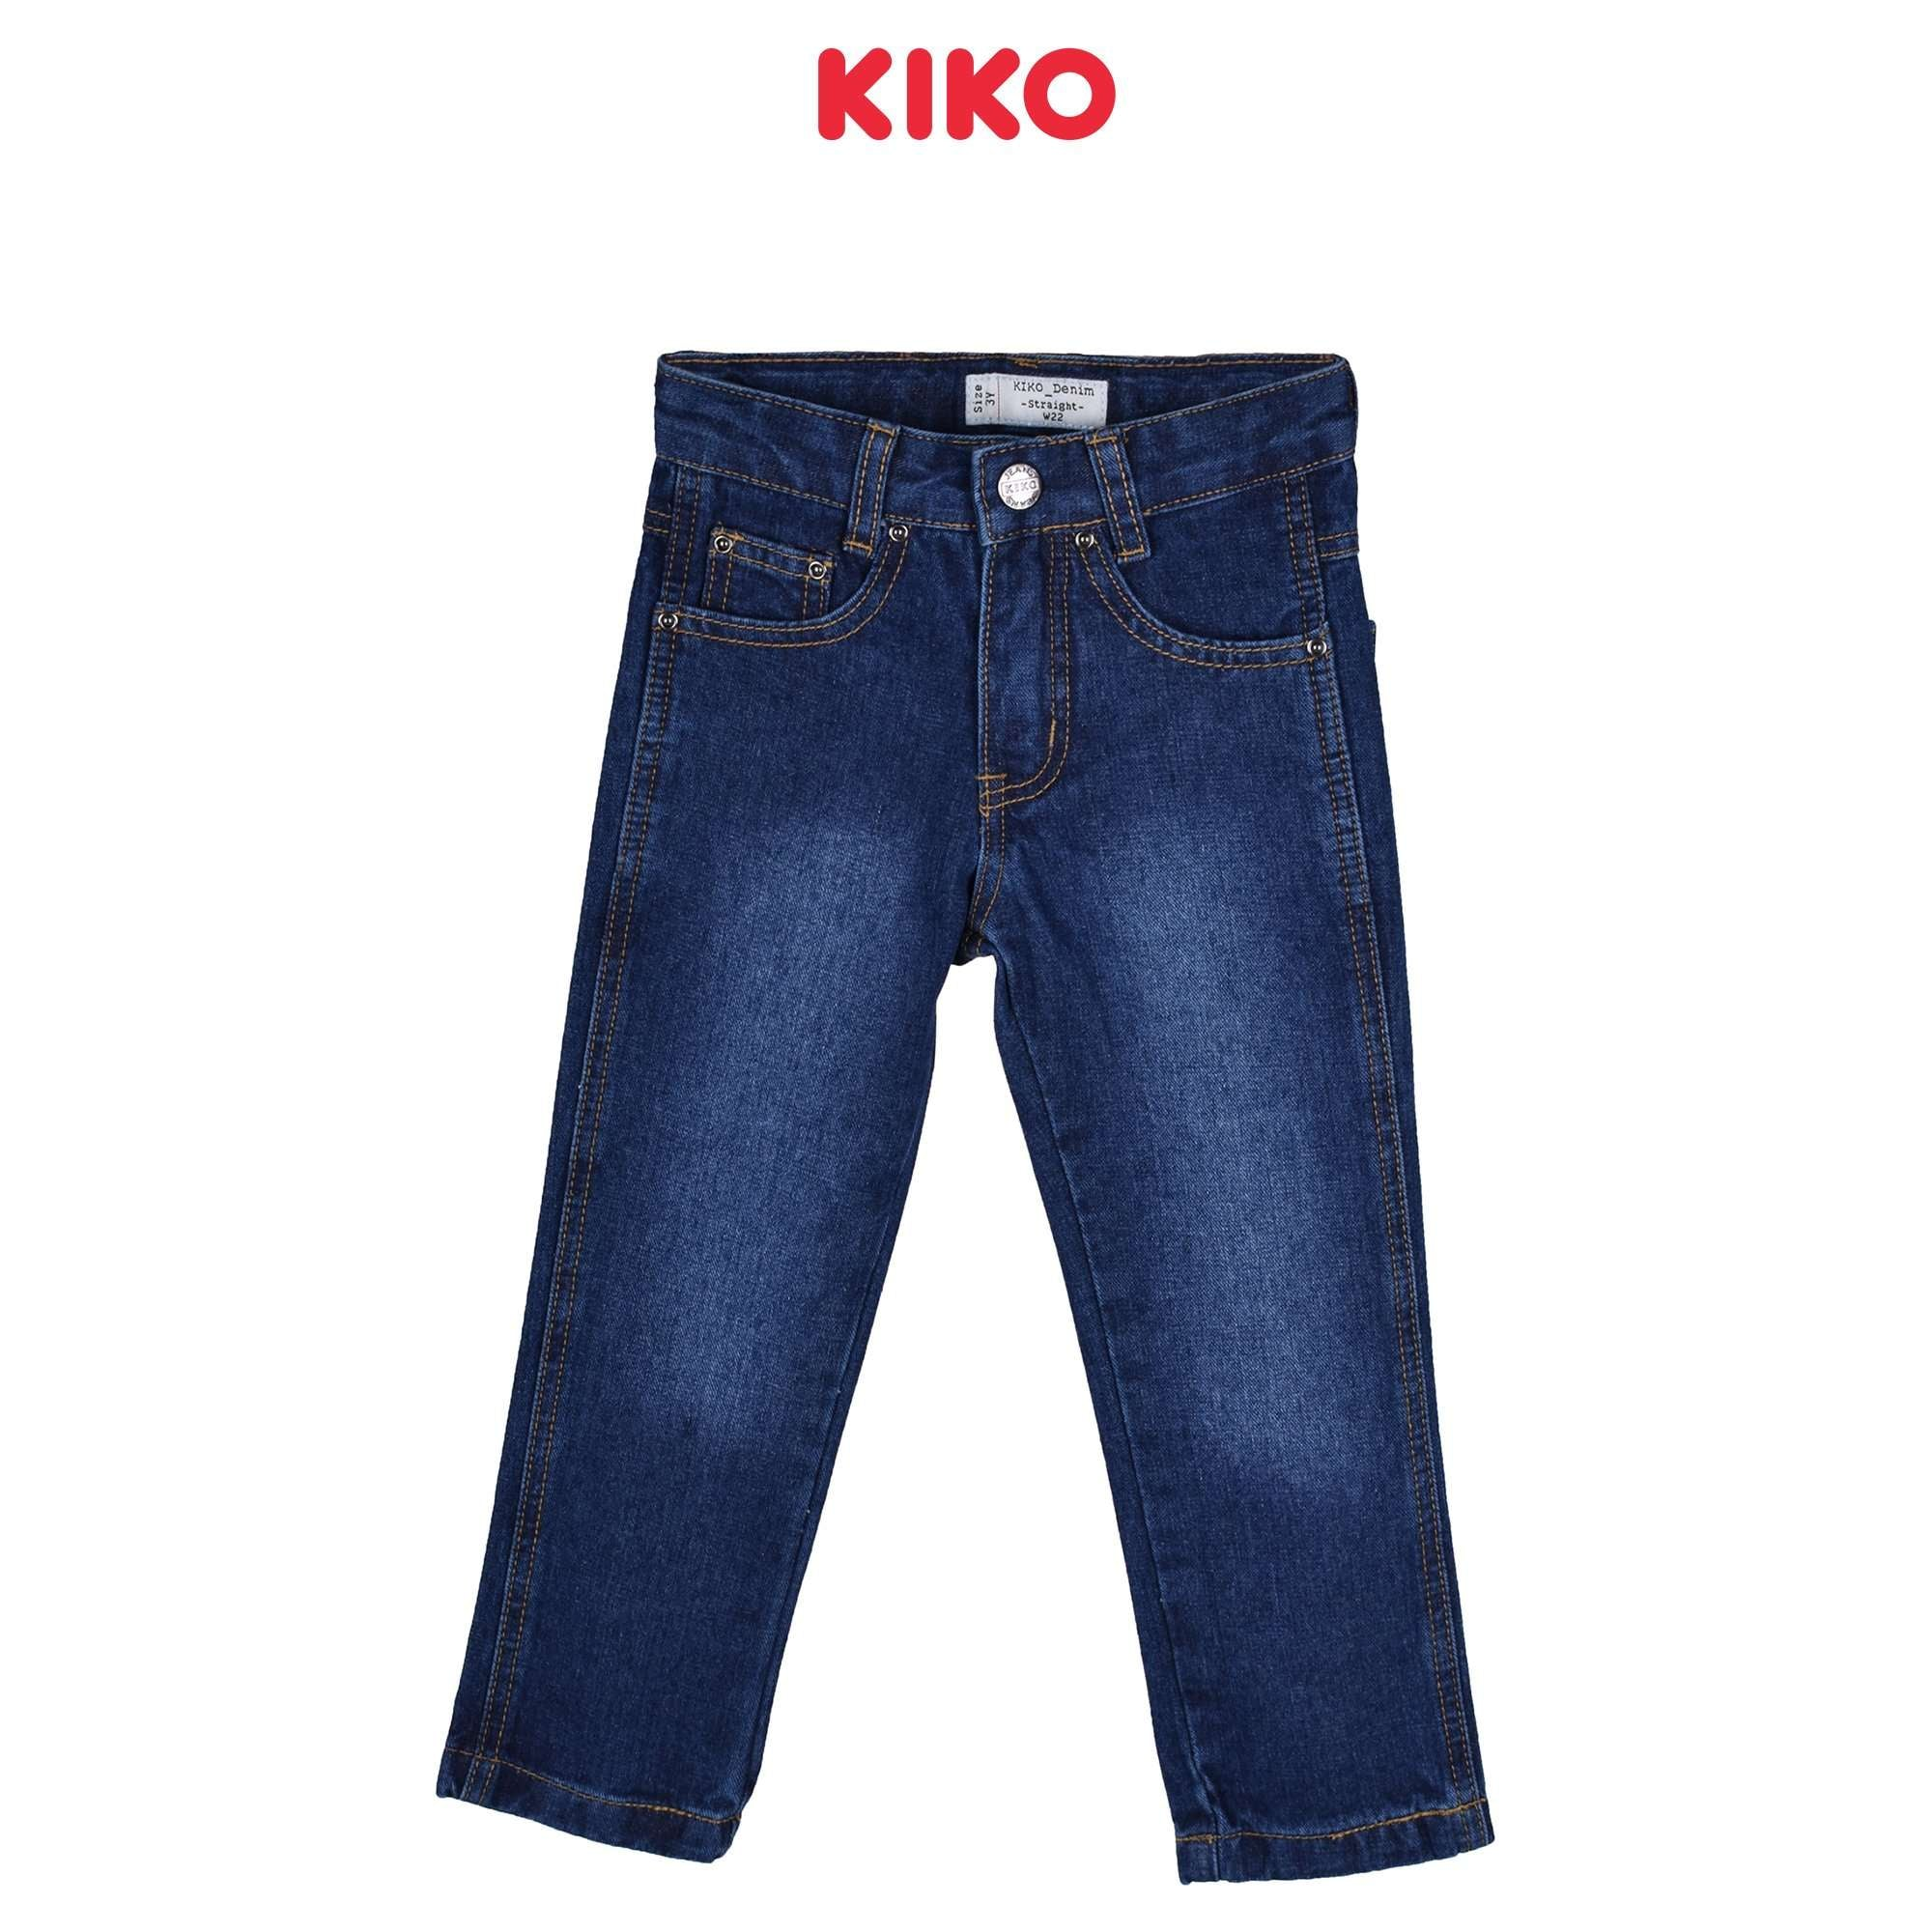 KIKO Boy Jeans Straight Cut 130055-216-L5-03R : Buy KIKO online at CMG.MY